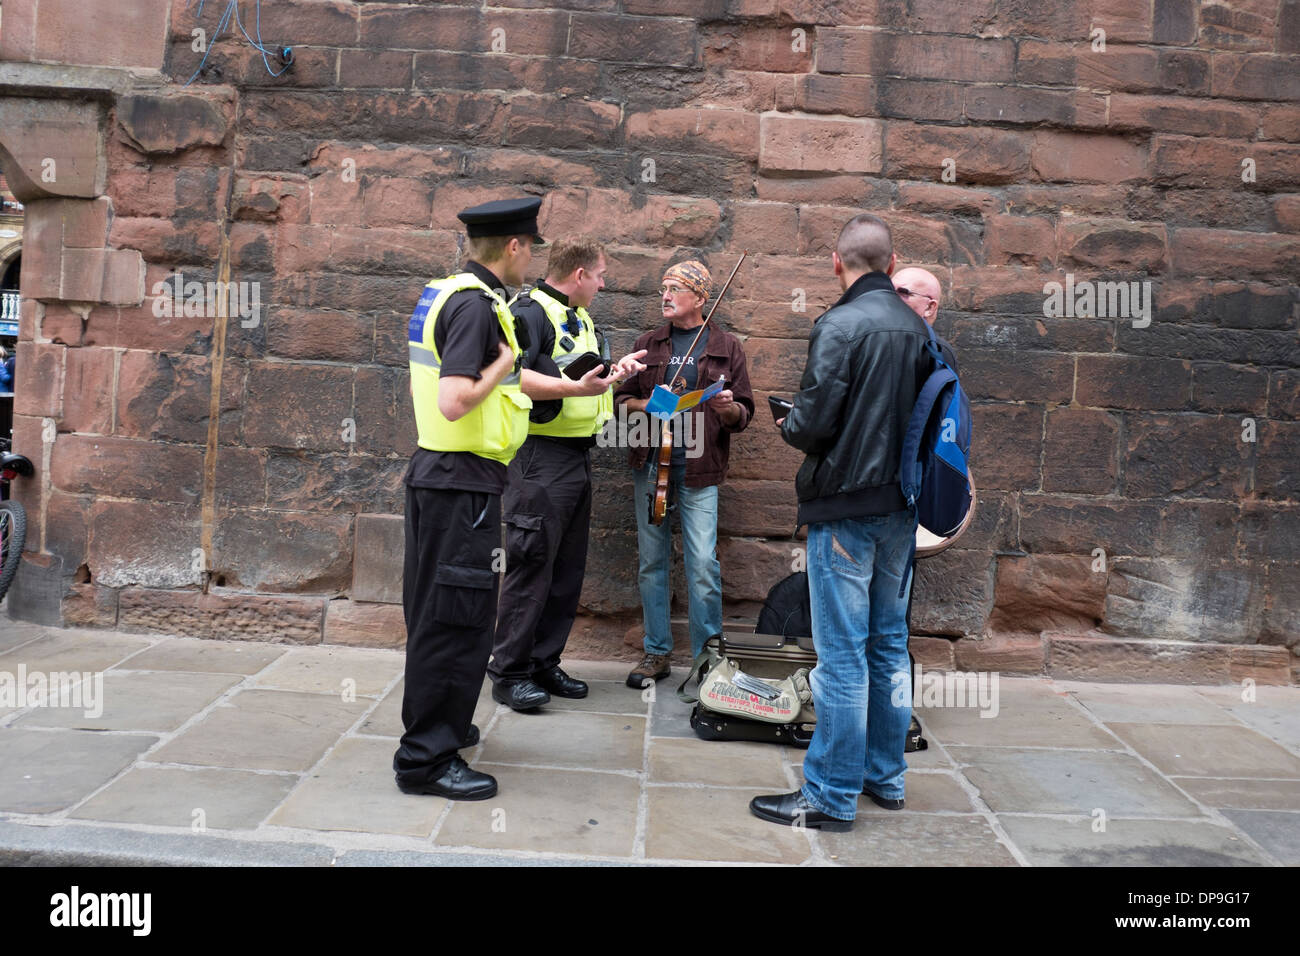 Policemen talking with buskers street entertainers - Stock Image